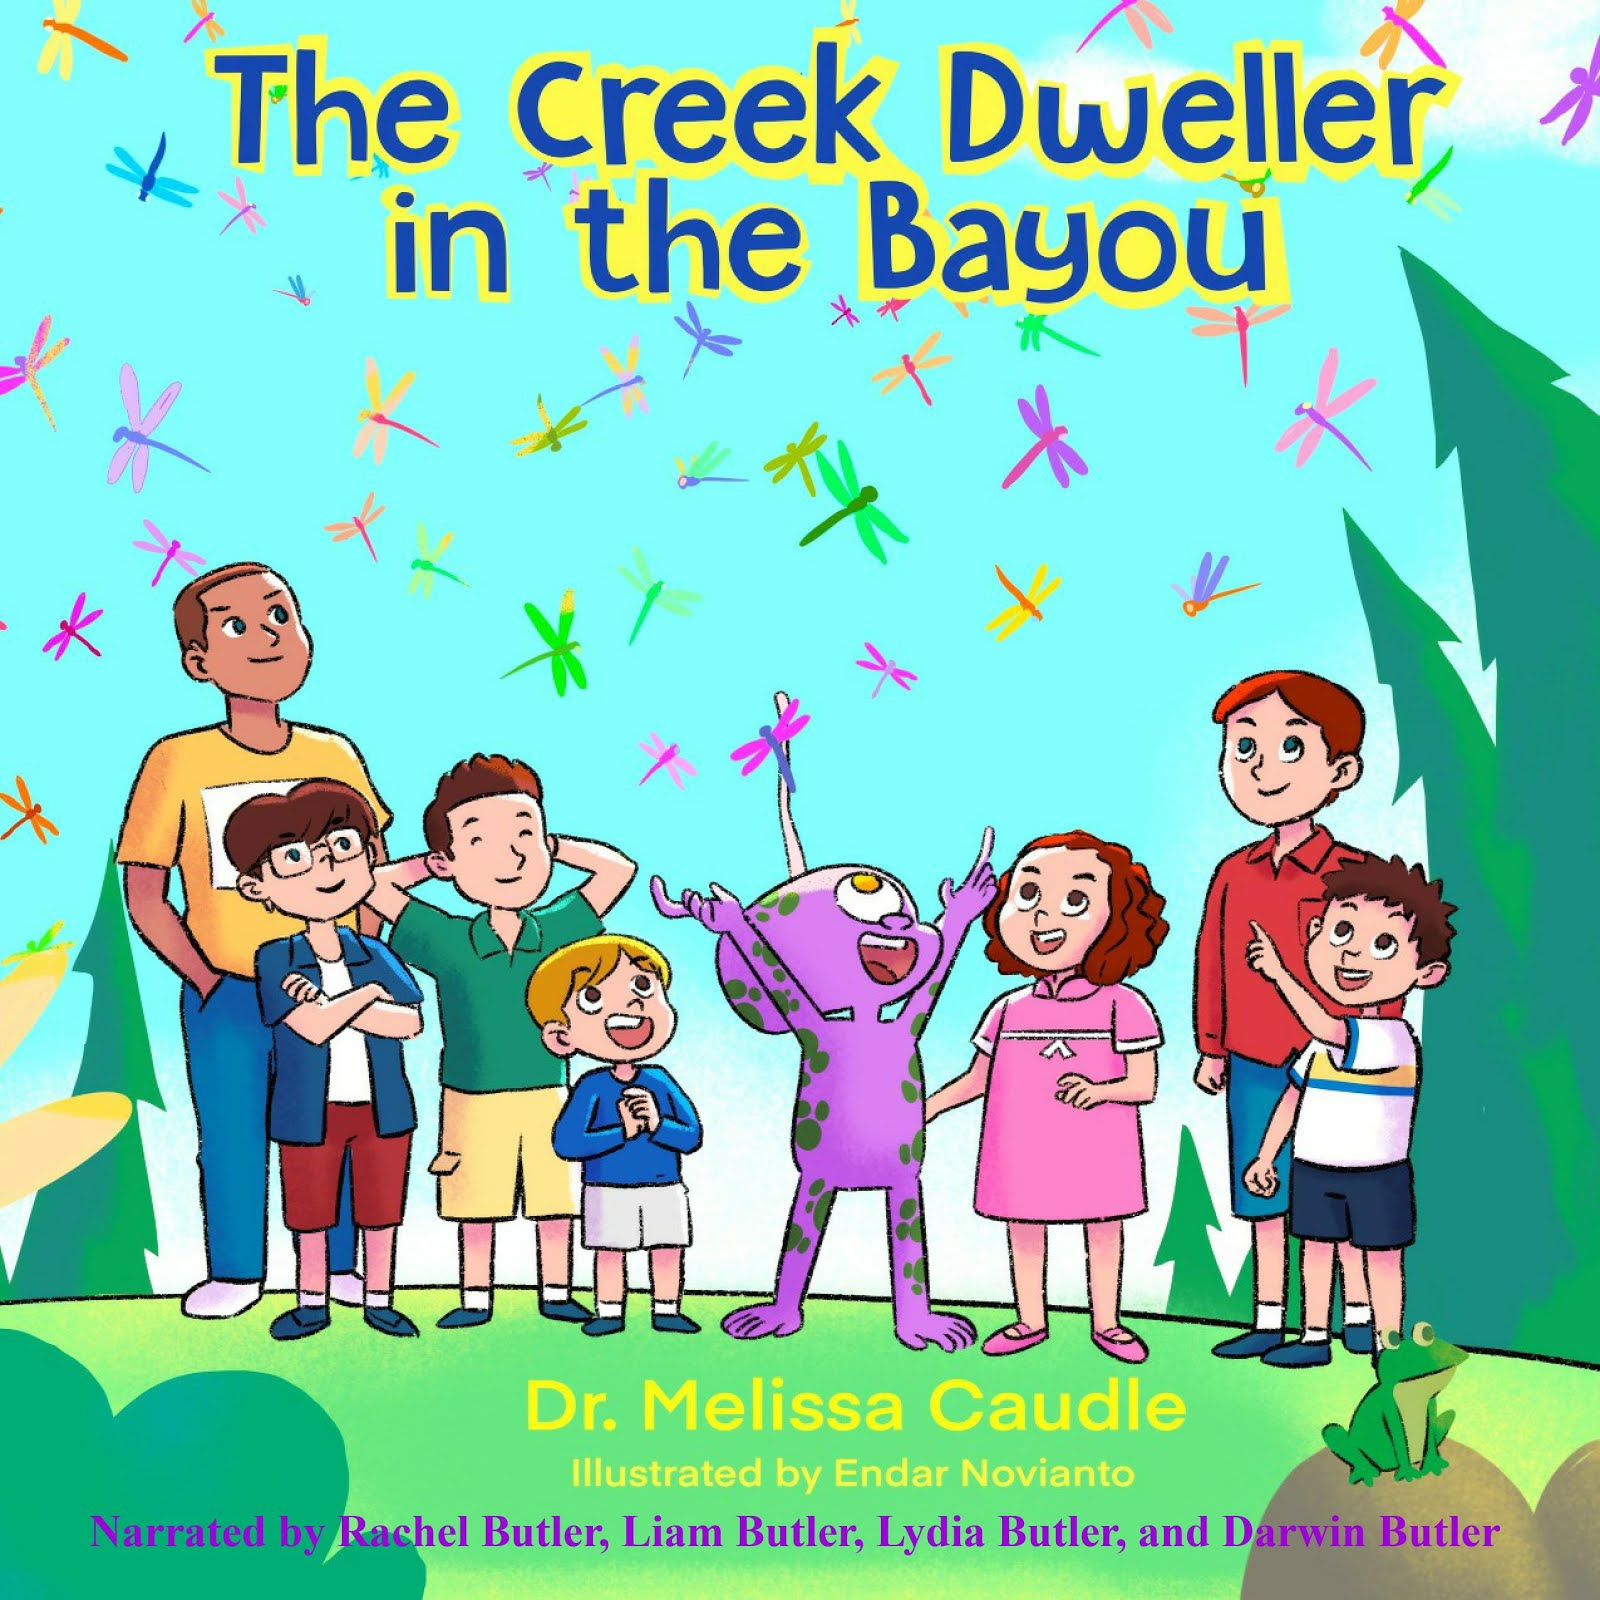 The Creek Dweller in the Bayou Audible Logo Audible Audiobook – Unabridged